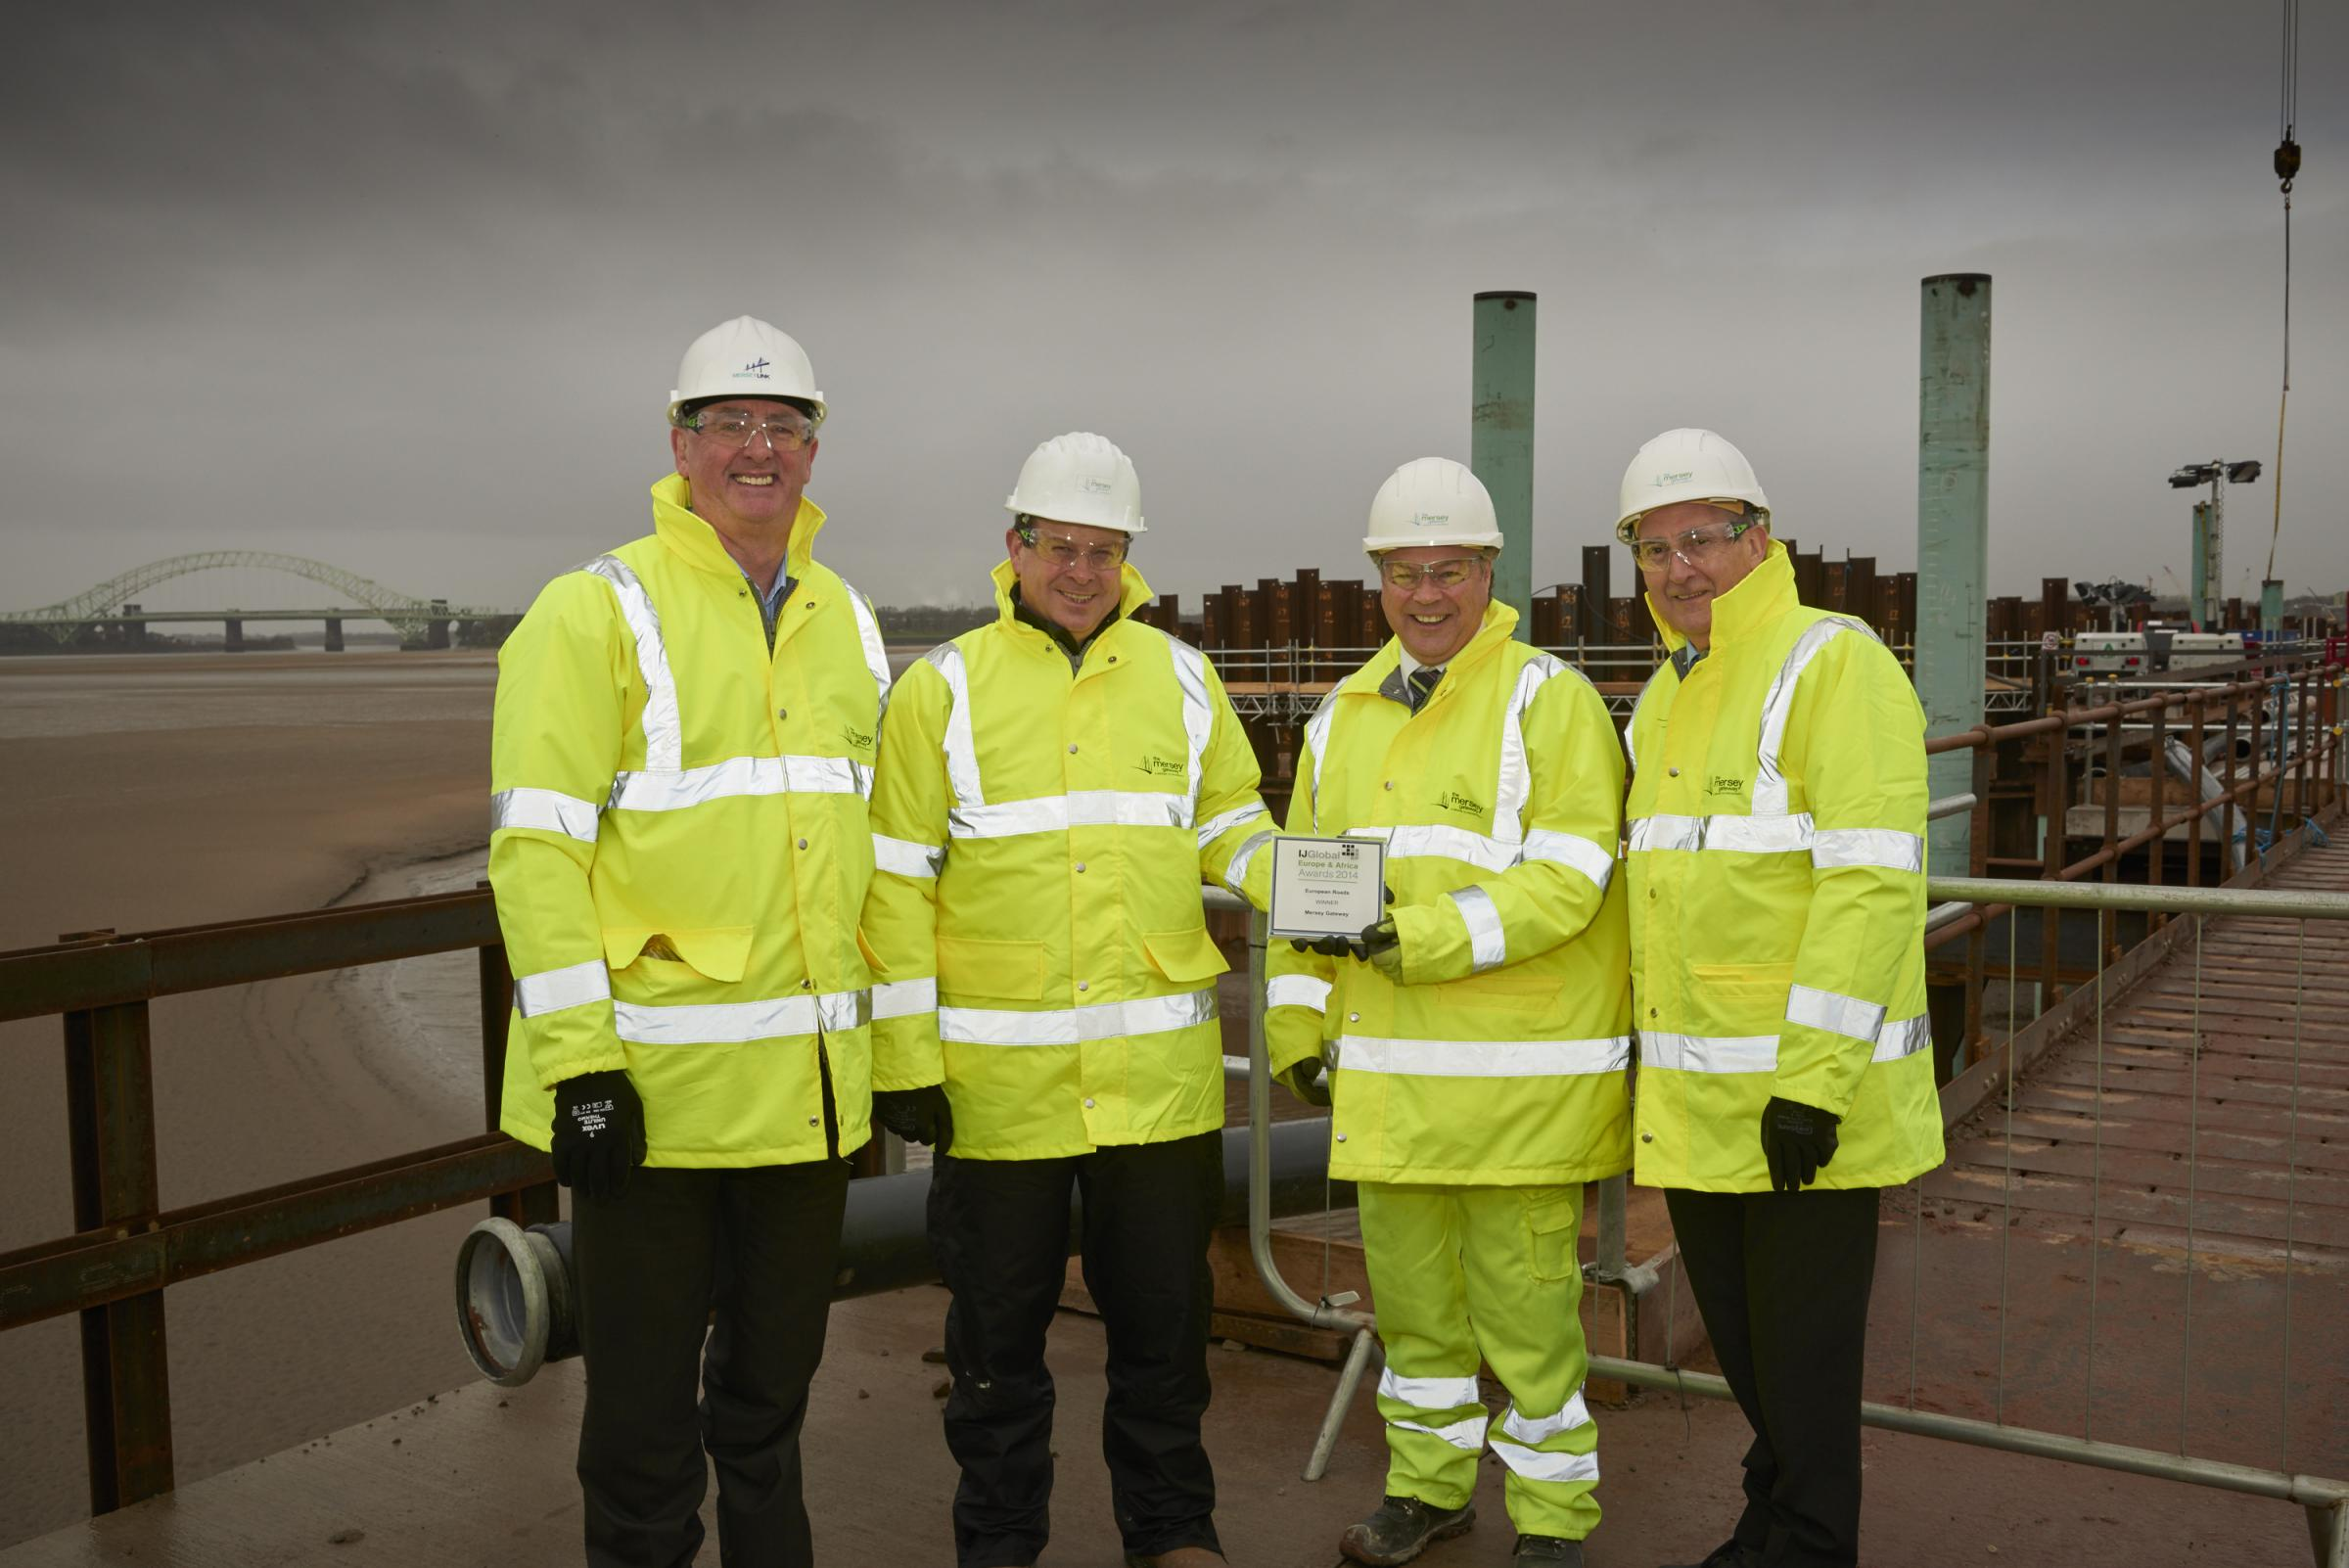 Hugh O'Connor, general manager Merseylink, Richard Walker, project director Merseylink, David Parr, chief executive Mersey Gateway Crossings Board, Rob Polhill, Halton Council leader and chairman Mersey Gateway crossings board